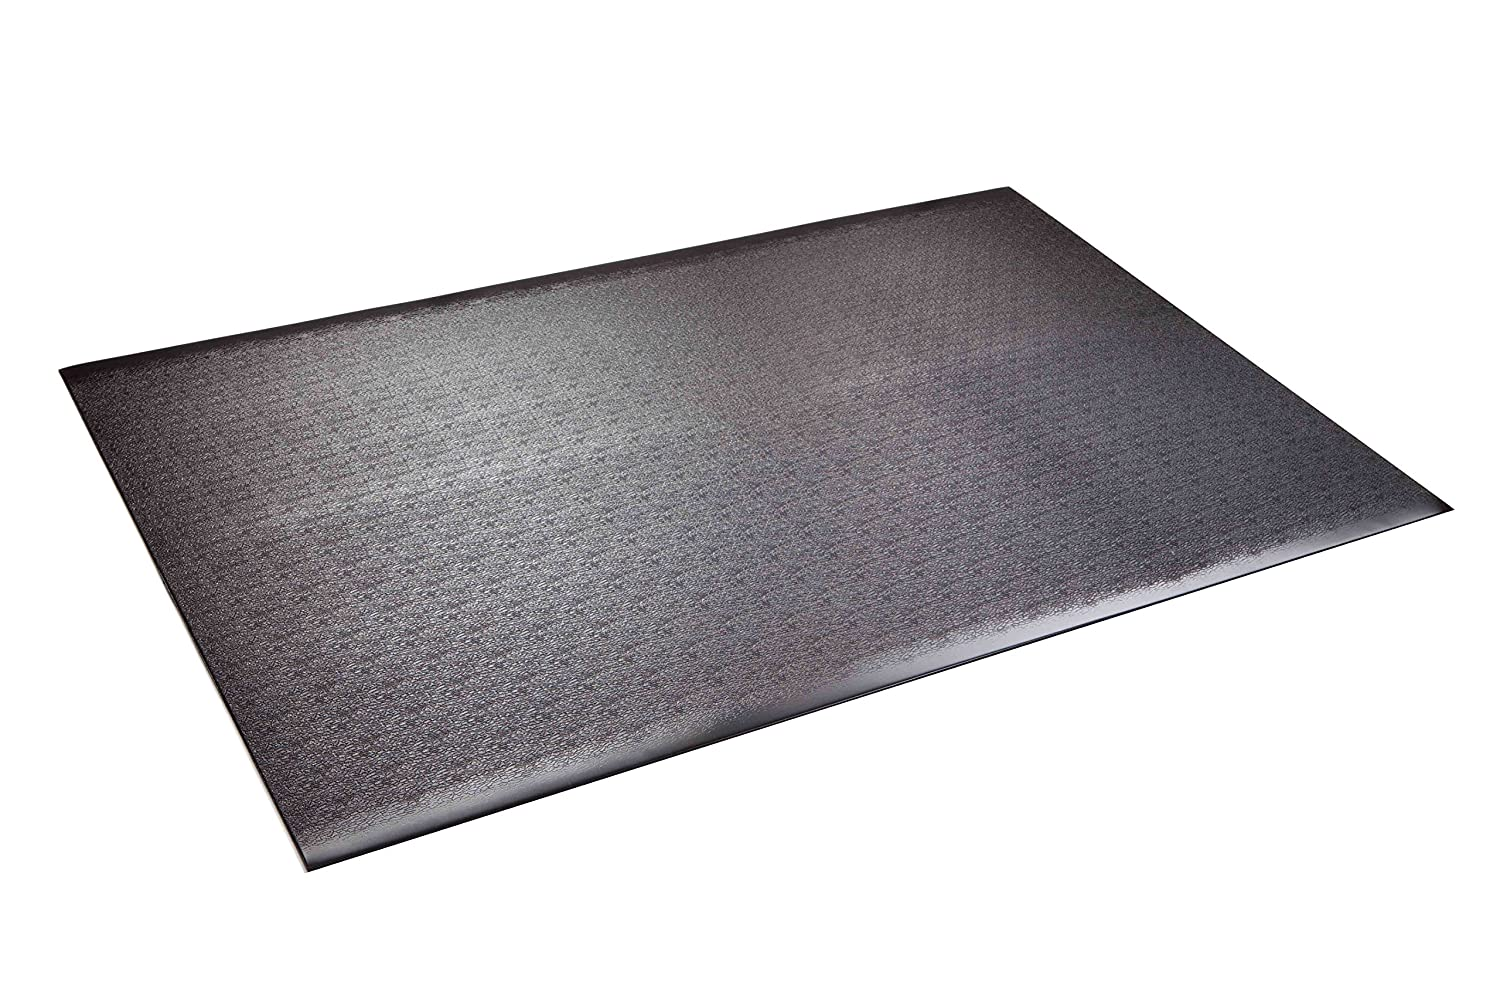 SuperMats High Density Commercial Grade Solid Equipment Mat 24GS Made in U.S.A. for Home Gyms Crossfit Training Flooring Weight Benches